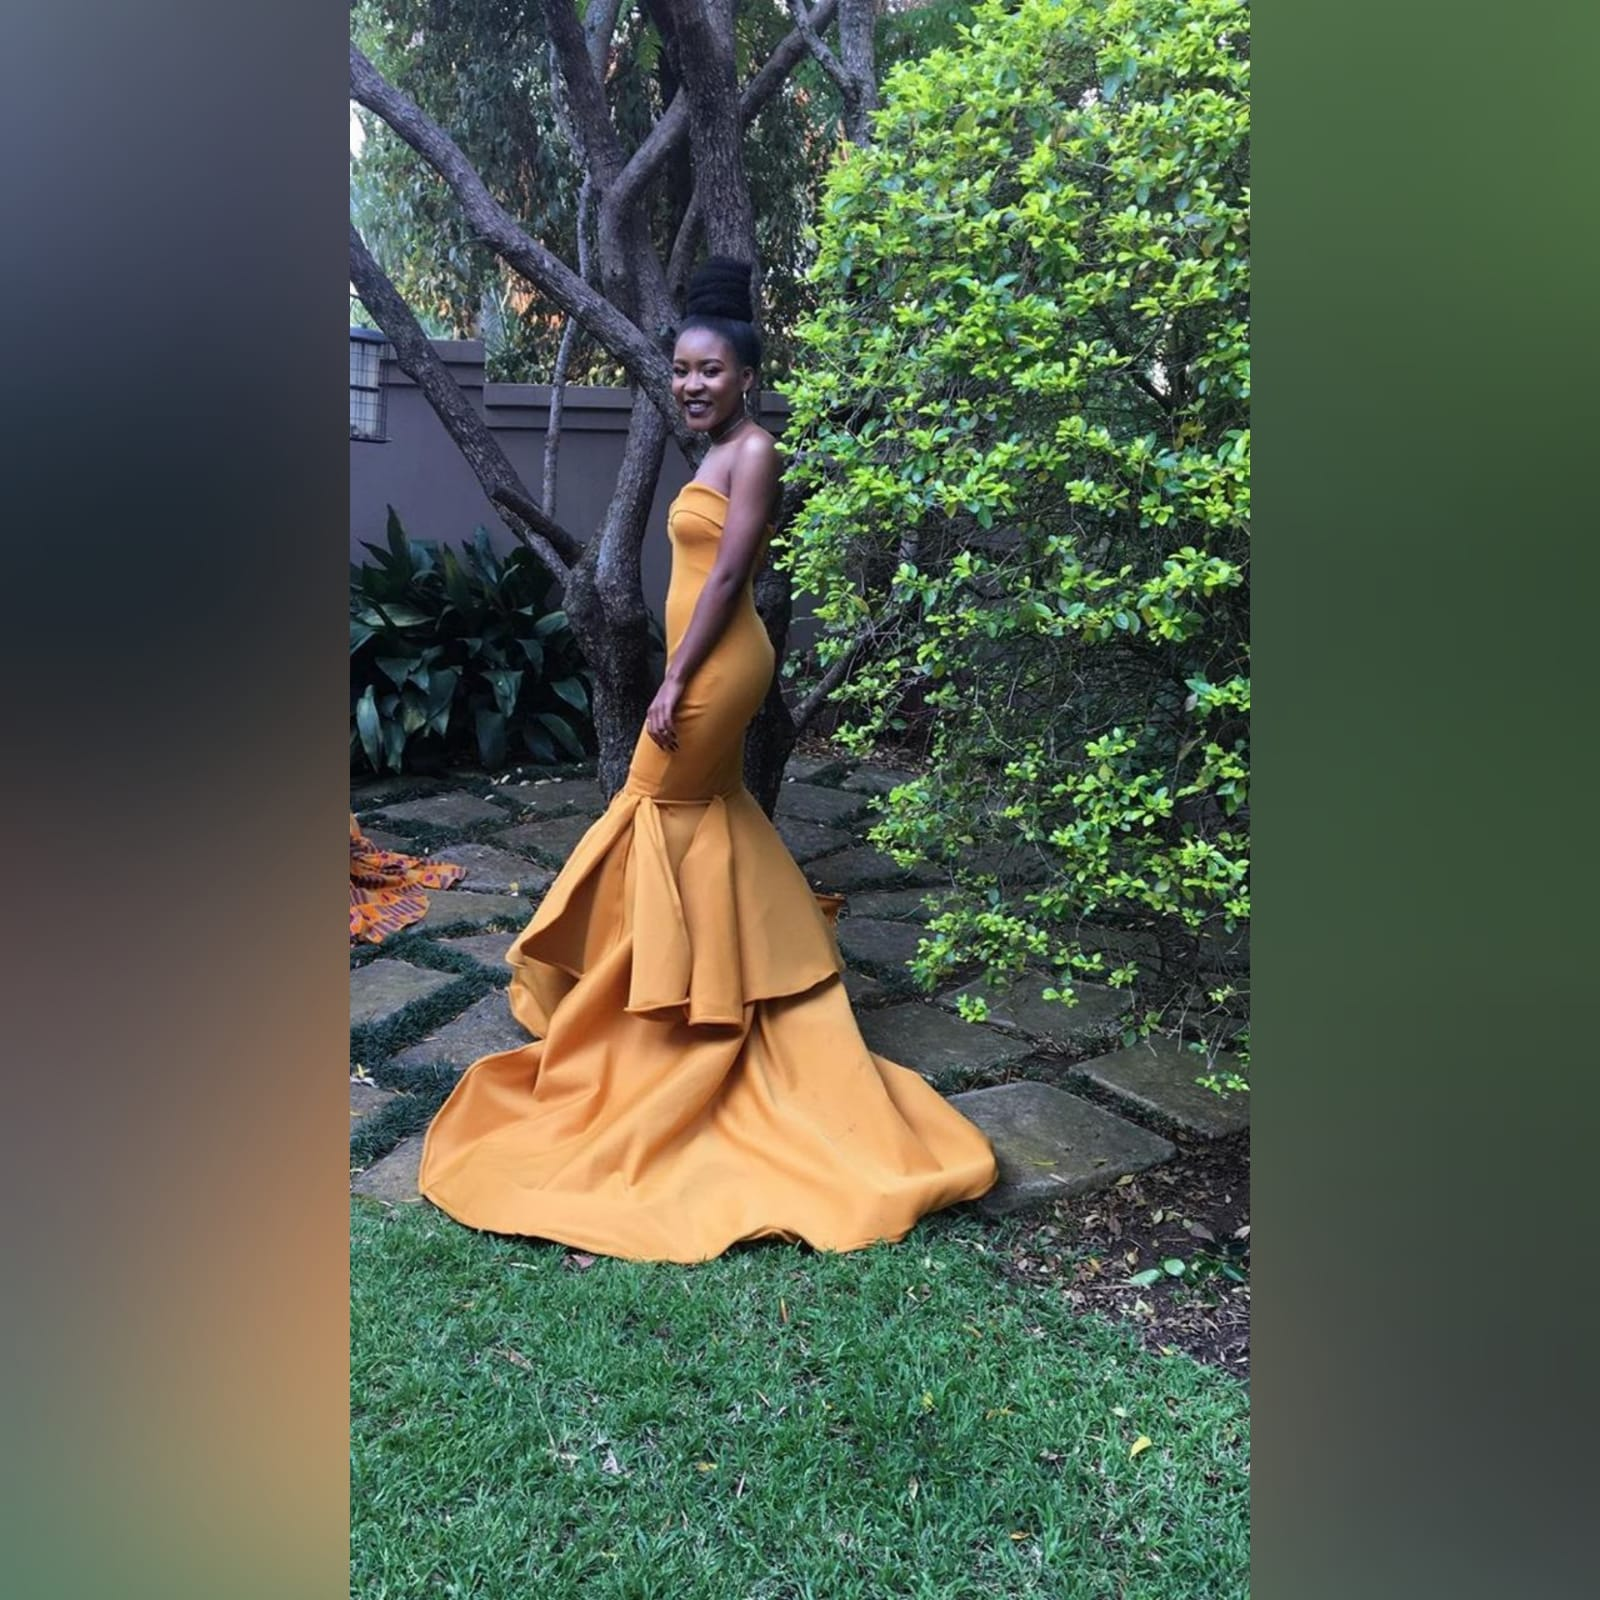 Mustard yellow sweetheart neckline mermaid prom dress 5 mustard yellow sweetheart neckline mermaid prom dress. With train and detailed stiff tubes